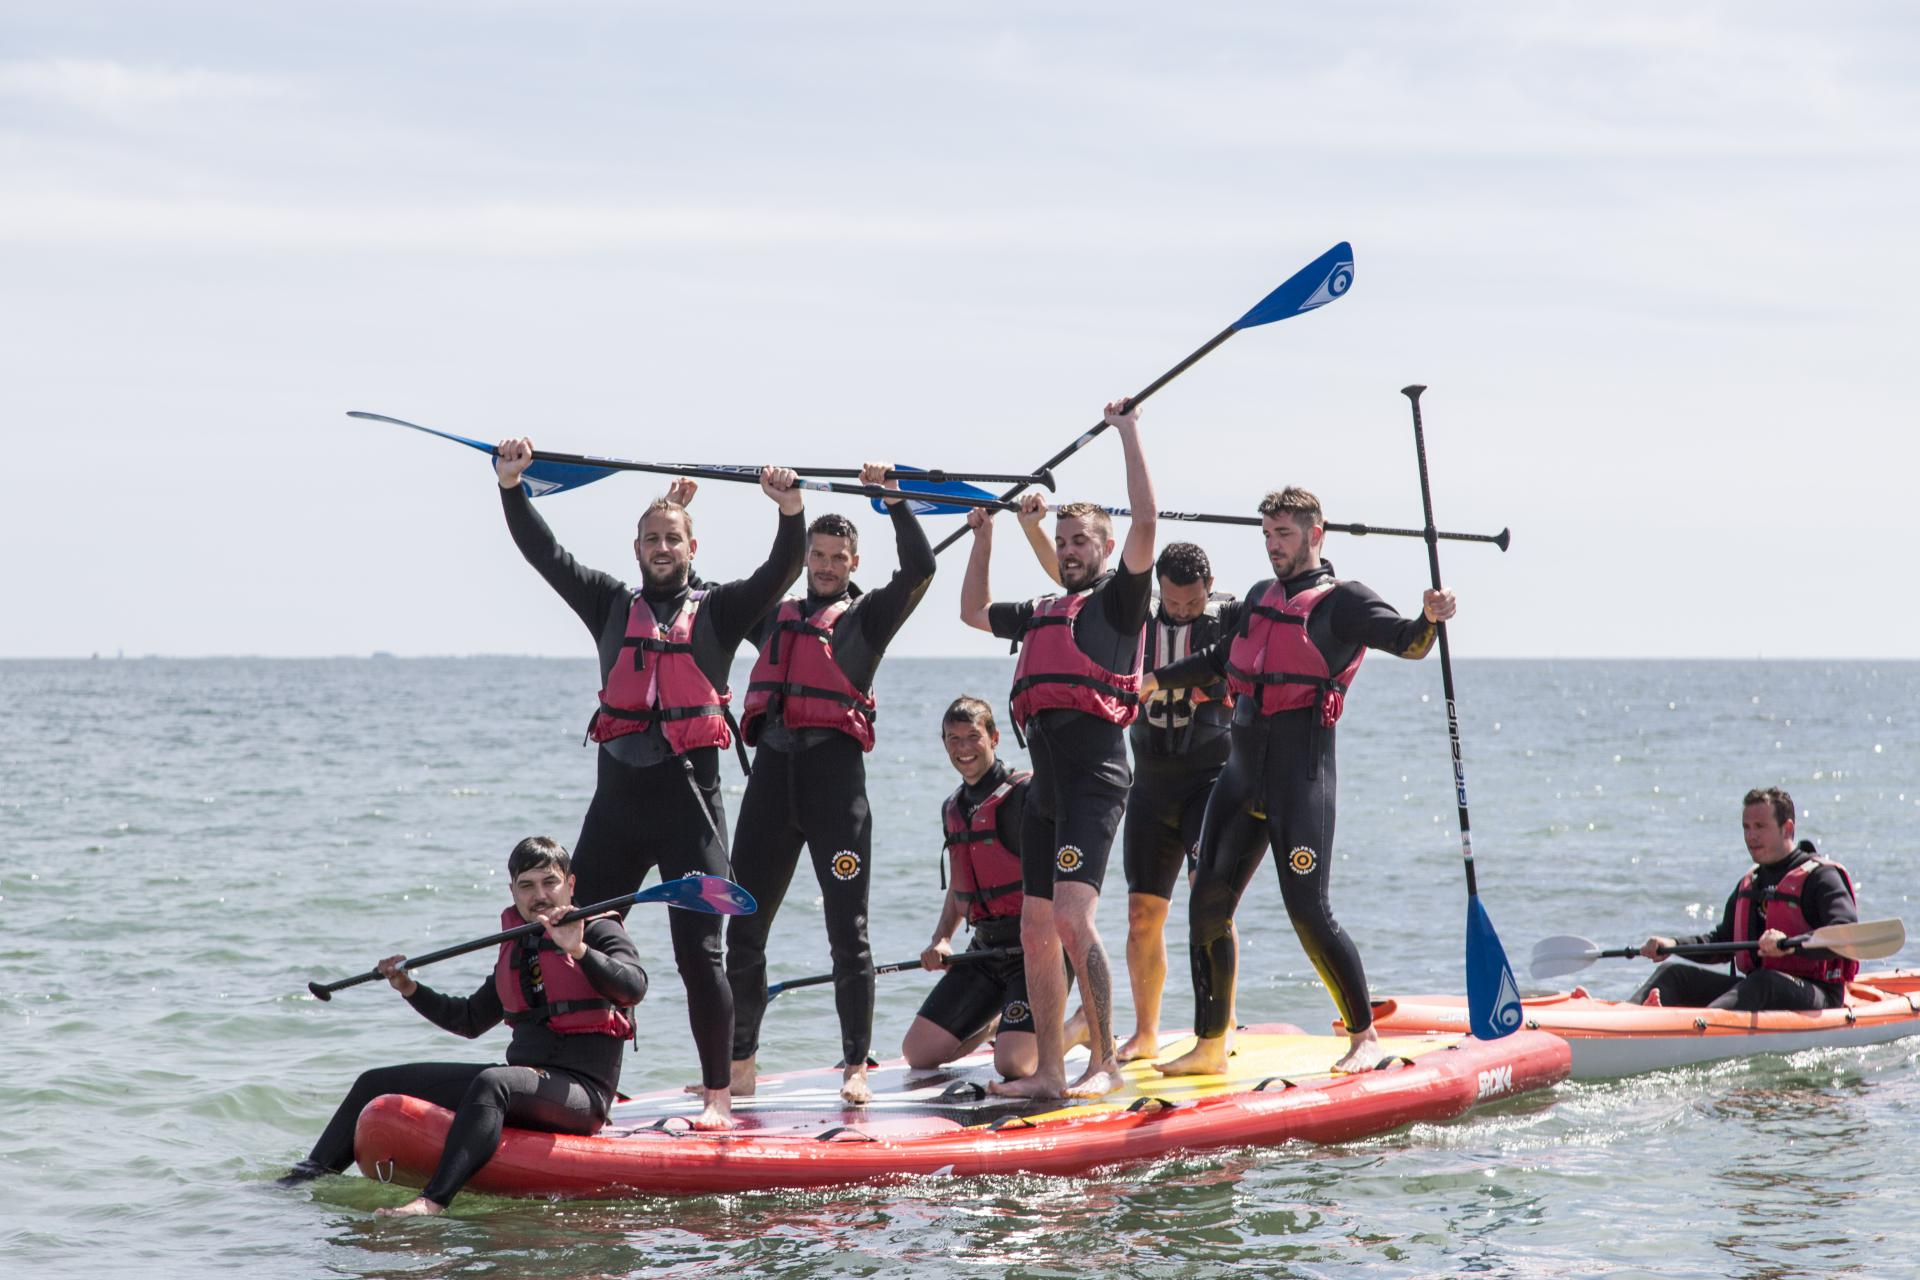 Mega SUP Geant - group at the Club Nautique du Rohu - Morbihan - Brittany